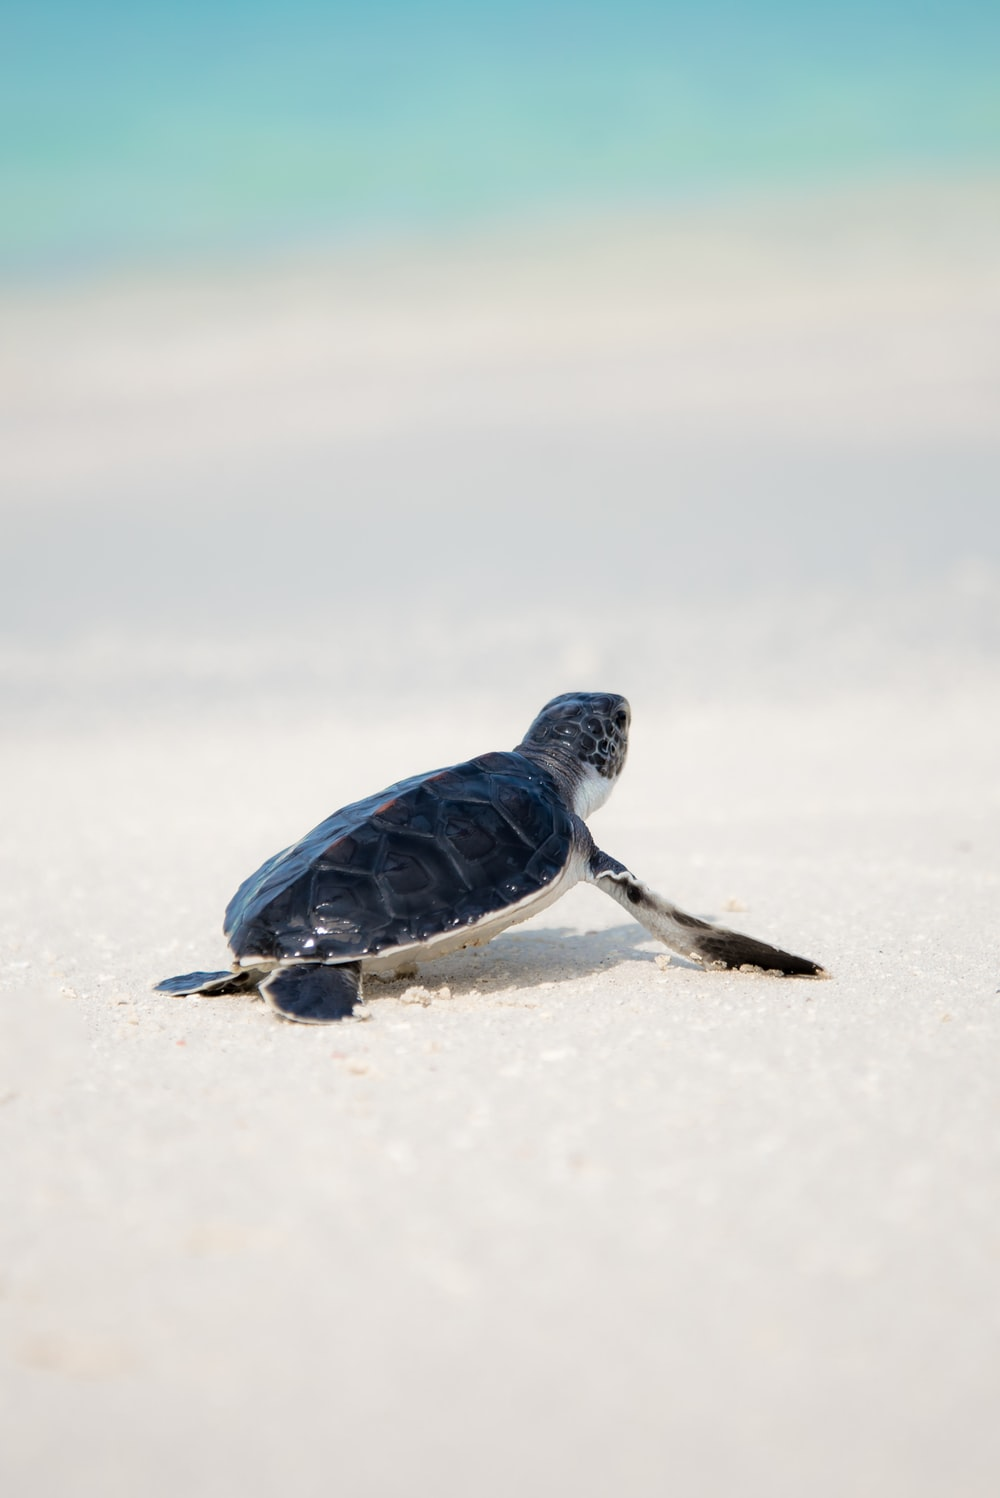 500 Turtle Pictures Download Images on Unsplash 1000x1498